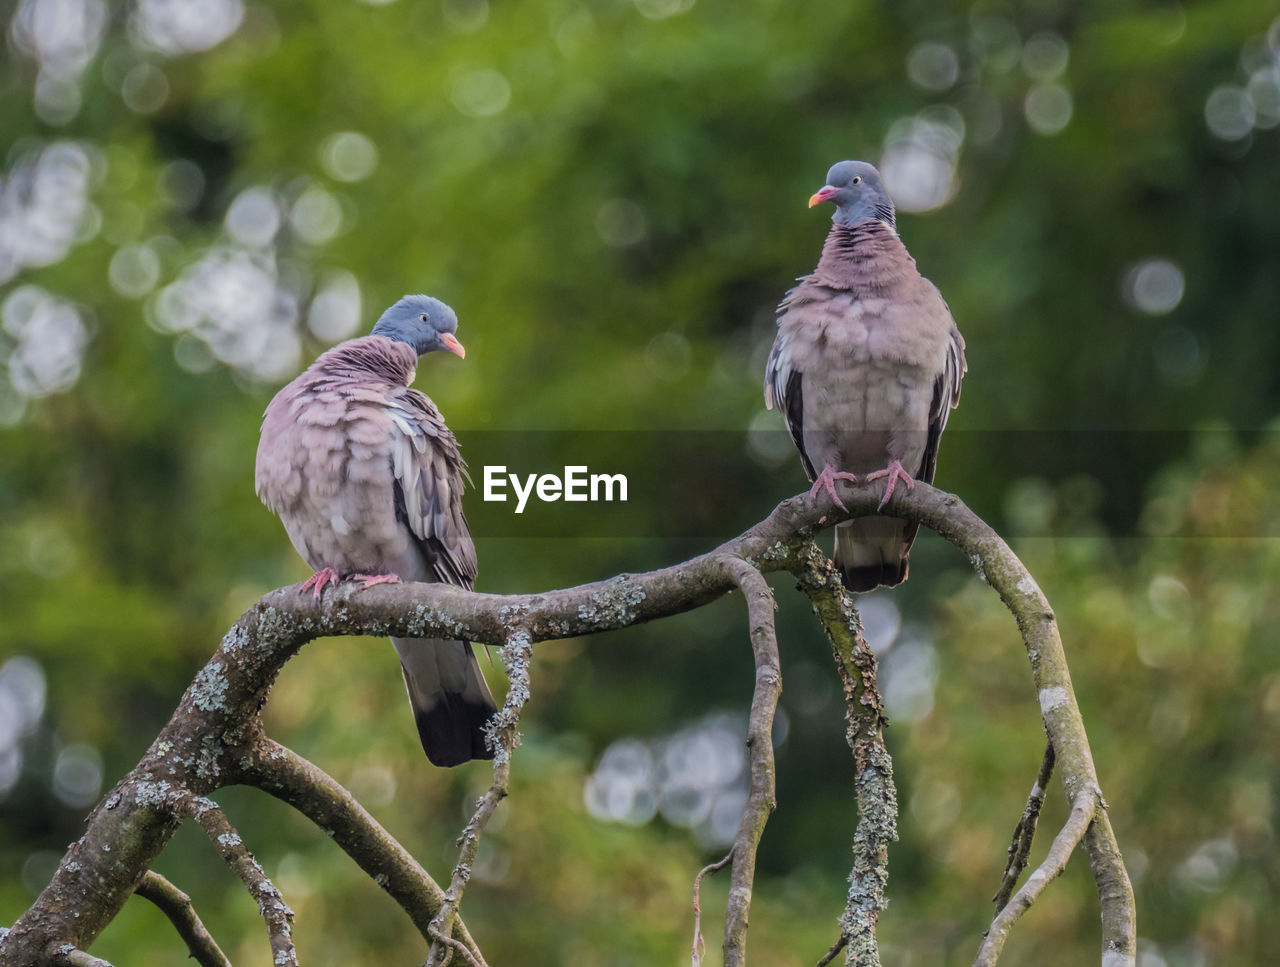 bird, perching, vertebrate, animal, animal themes, animal wildlife, focus on foreground, animals in the wild, tree, group of animals, no people, branch, day, two animals, outdoors, plant, nature, mourning dove, close-up, beauty in nature